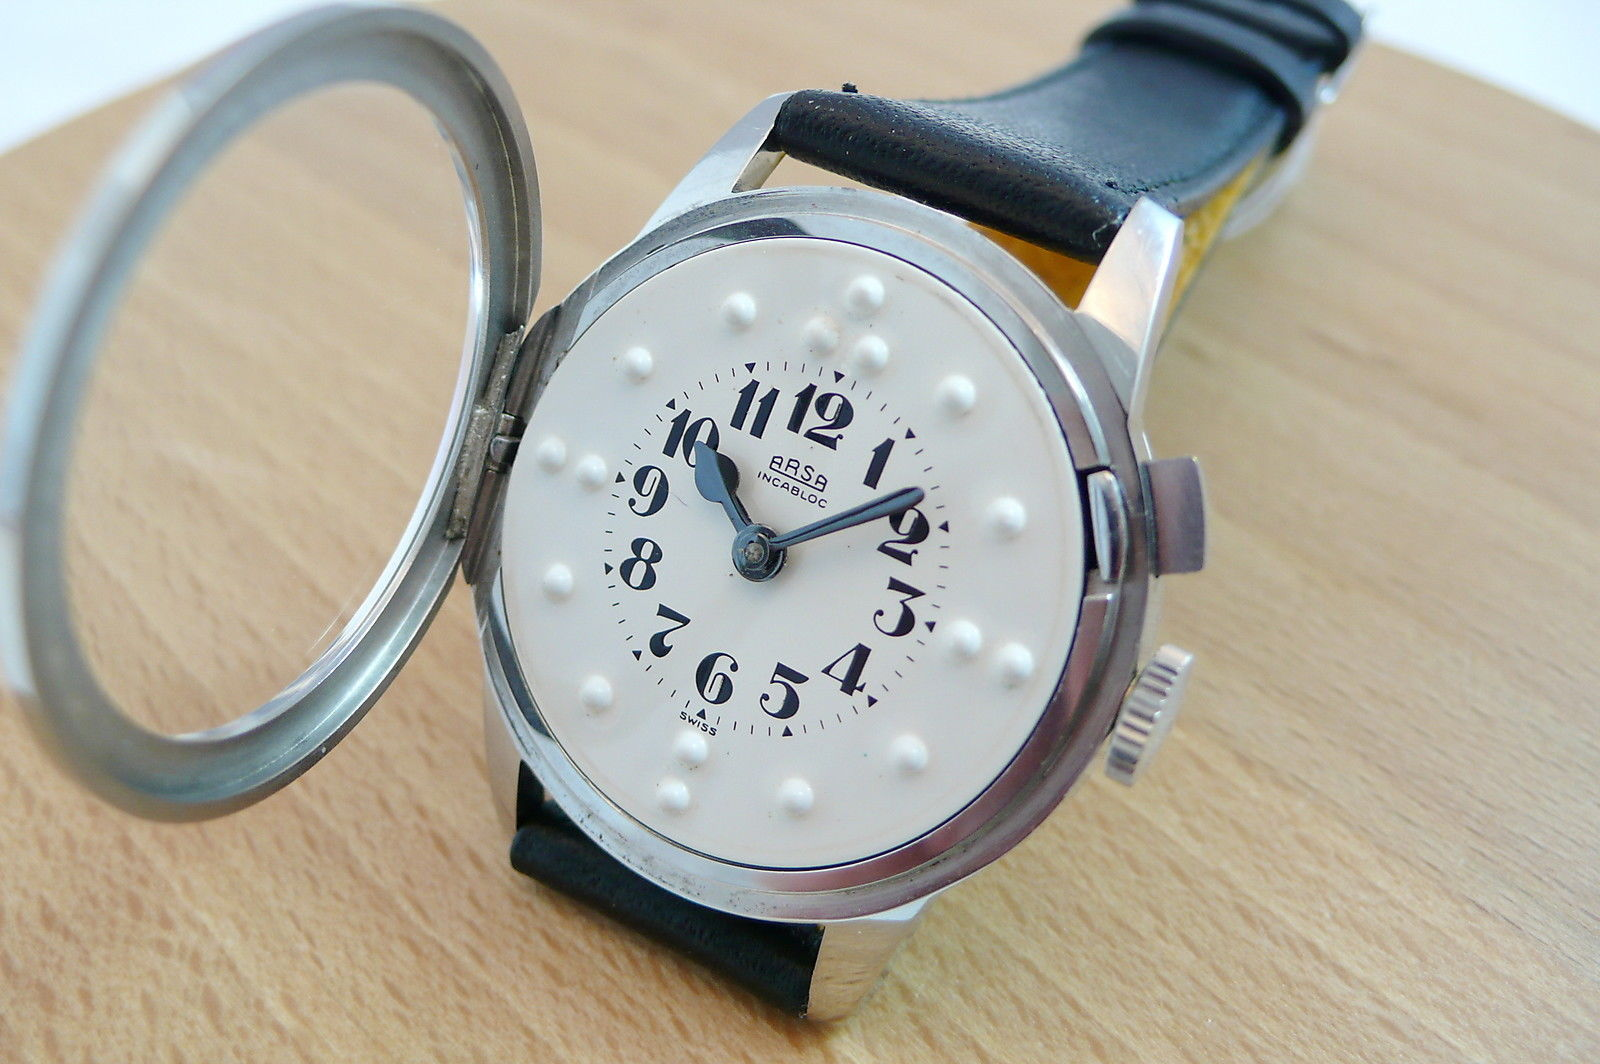 Arsa Braille Watch Open